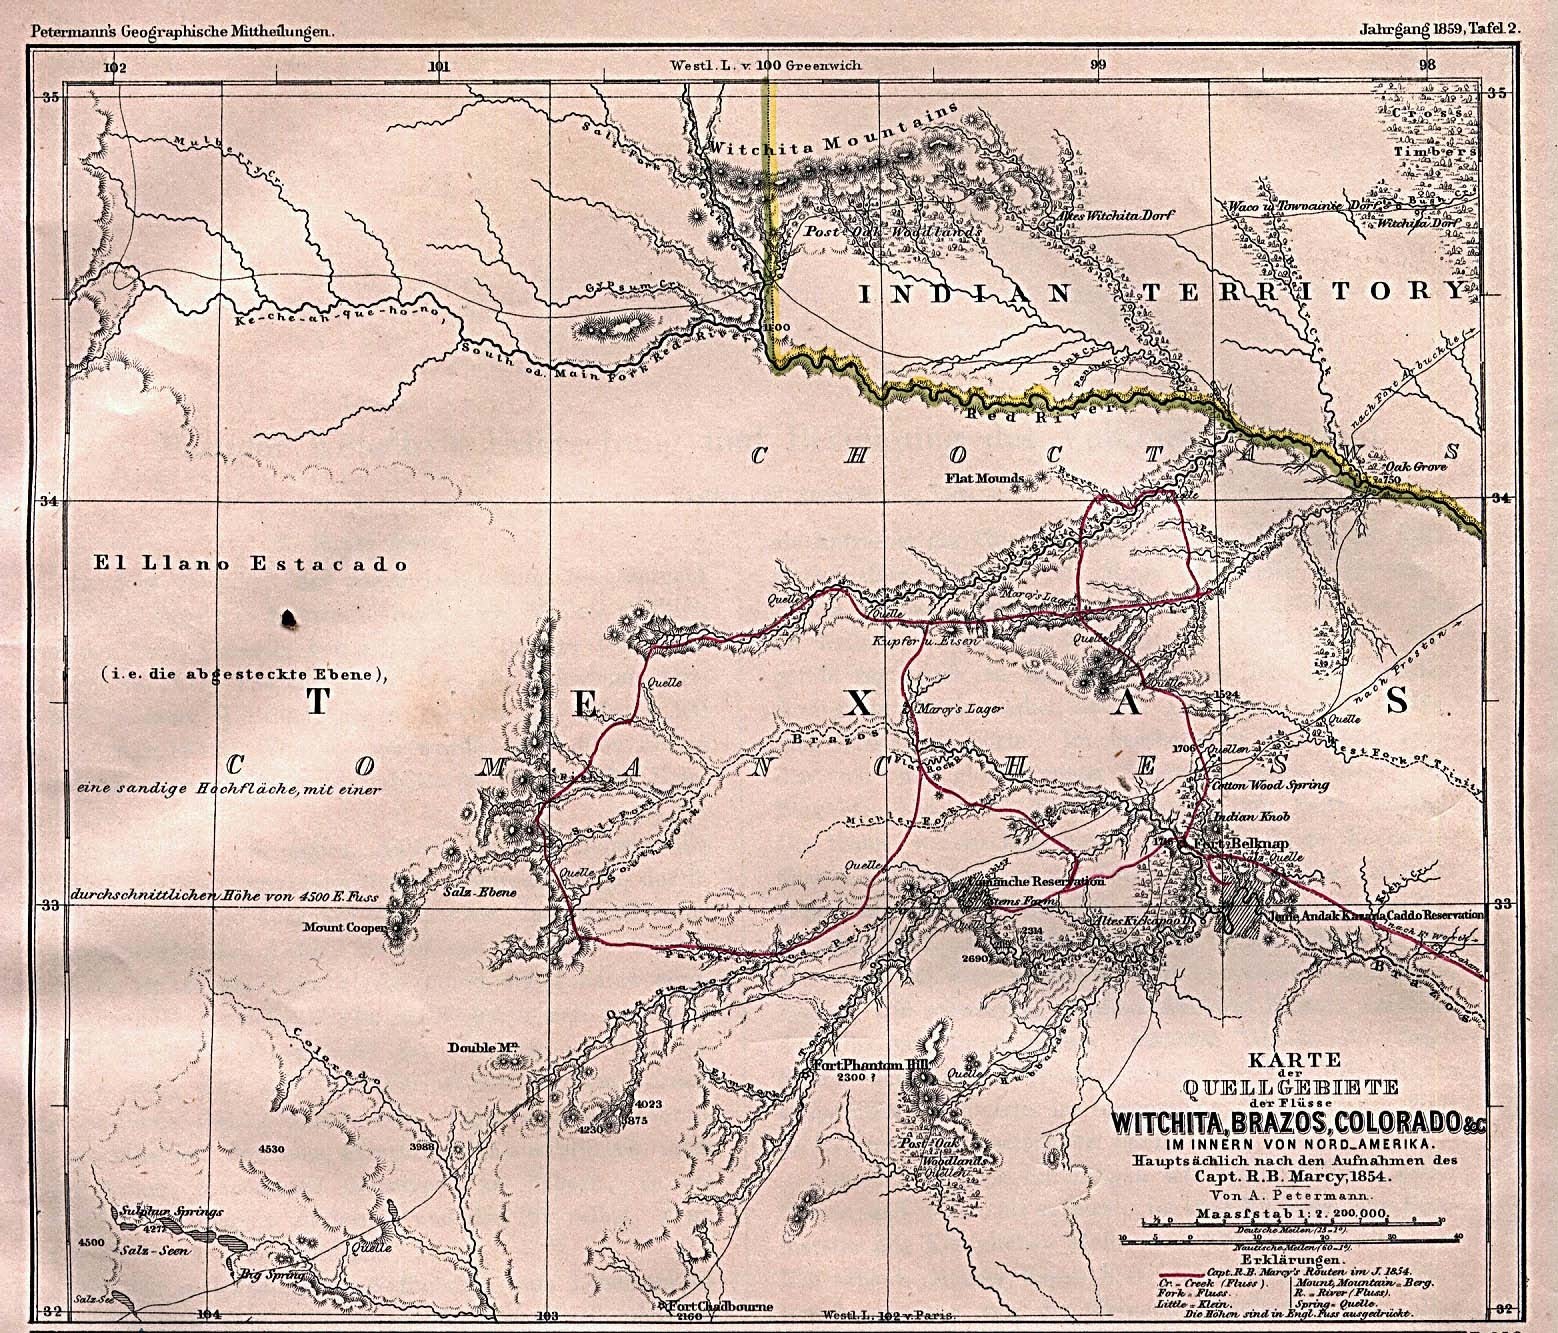 Map of Captain Marcy's route though Texas 1854